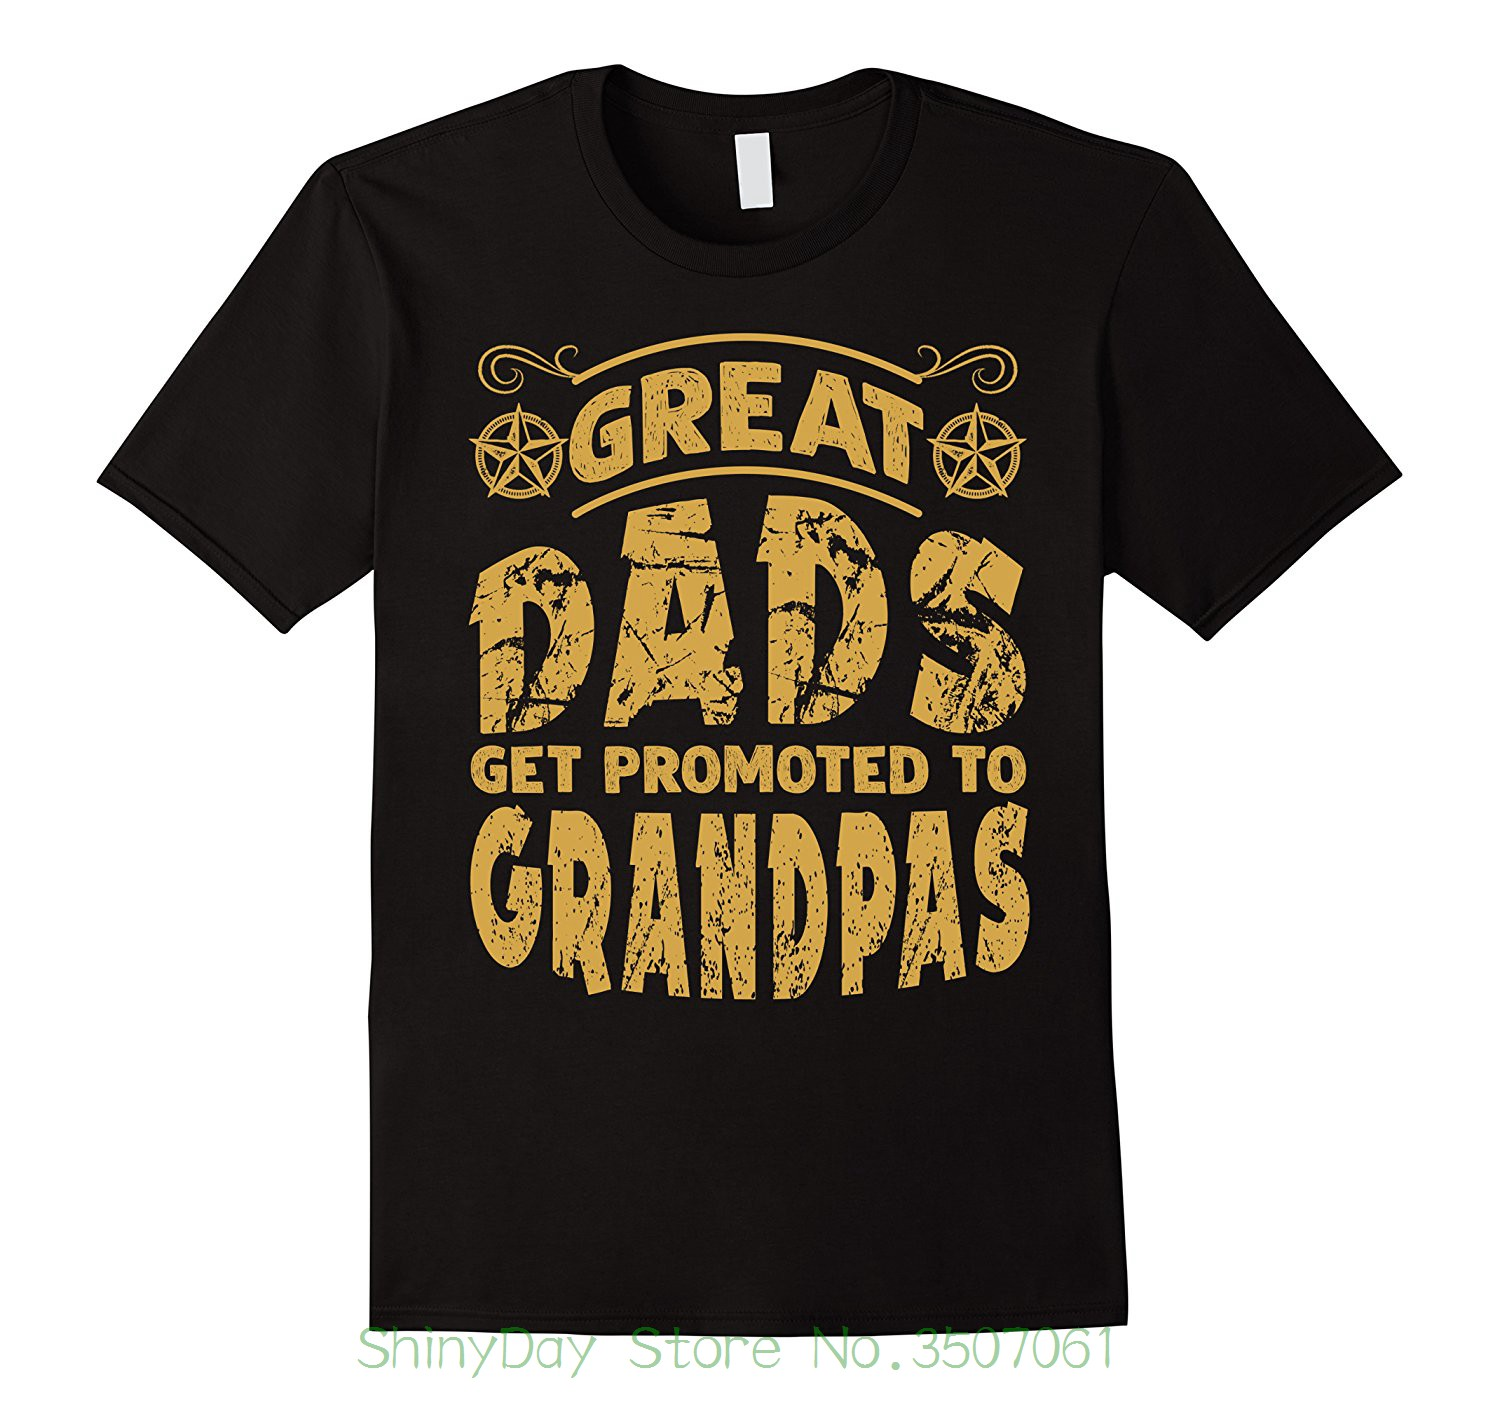 Sleeve Men Tshirt Fashion Great Dads Get Promoted To Grandpas Fathers Day Gifts Shirt